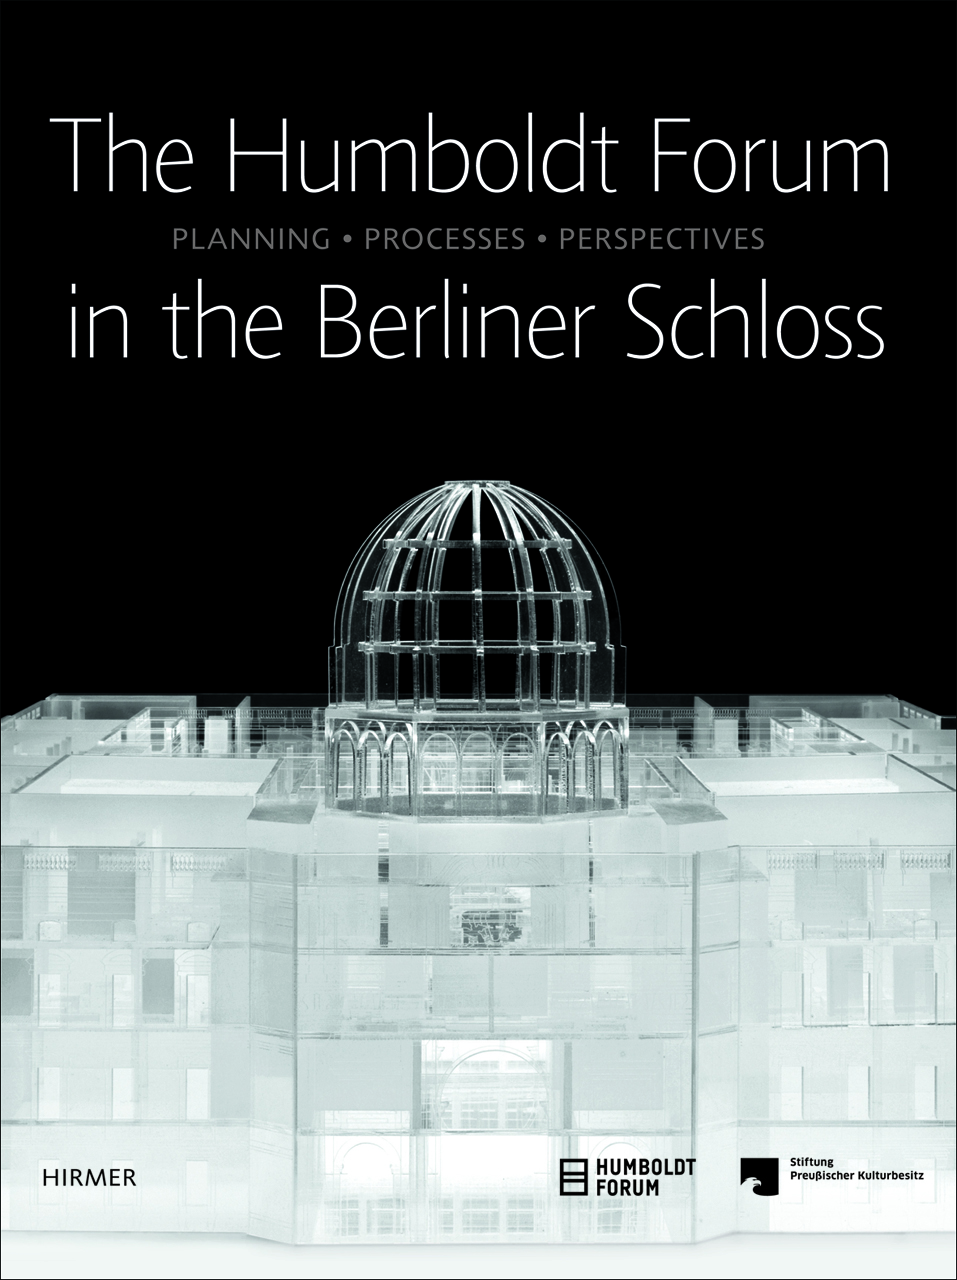 The Humboldt-Forum in the Berliner Schloss: Planning, Processes, Perspectives